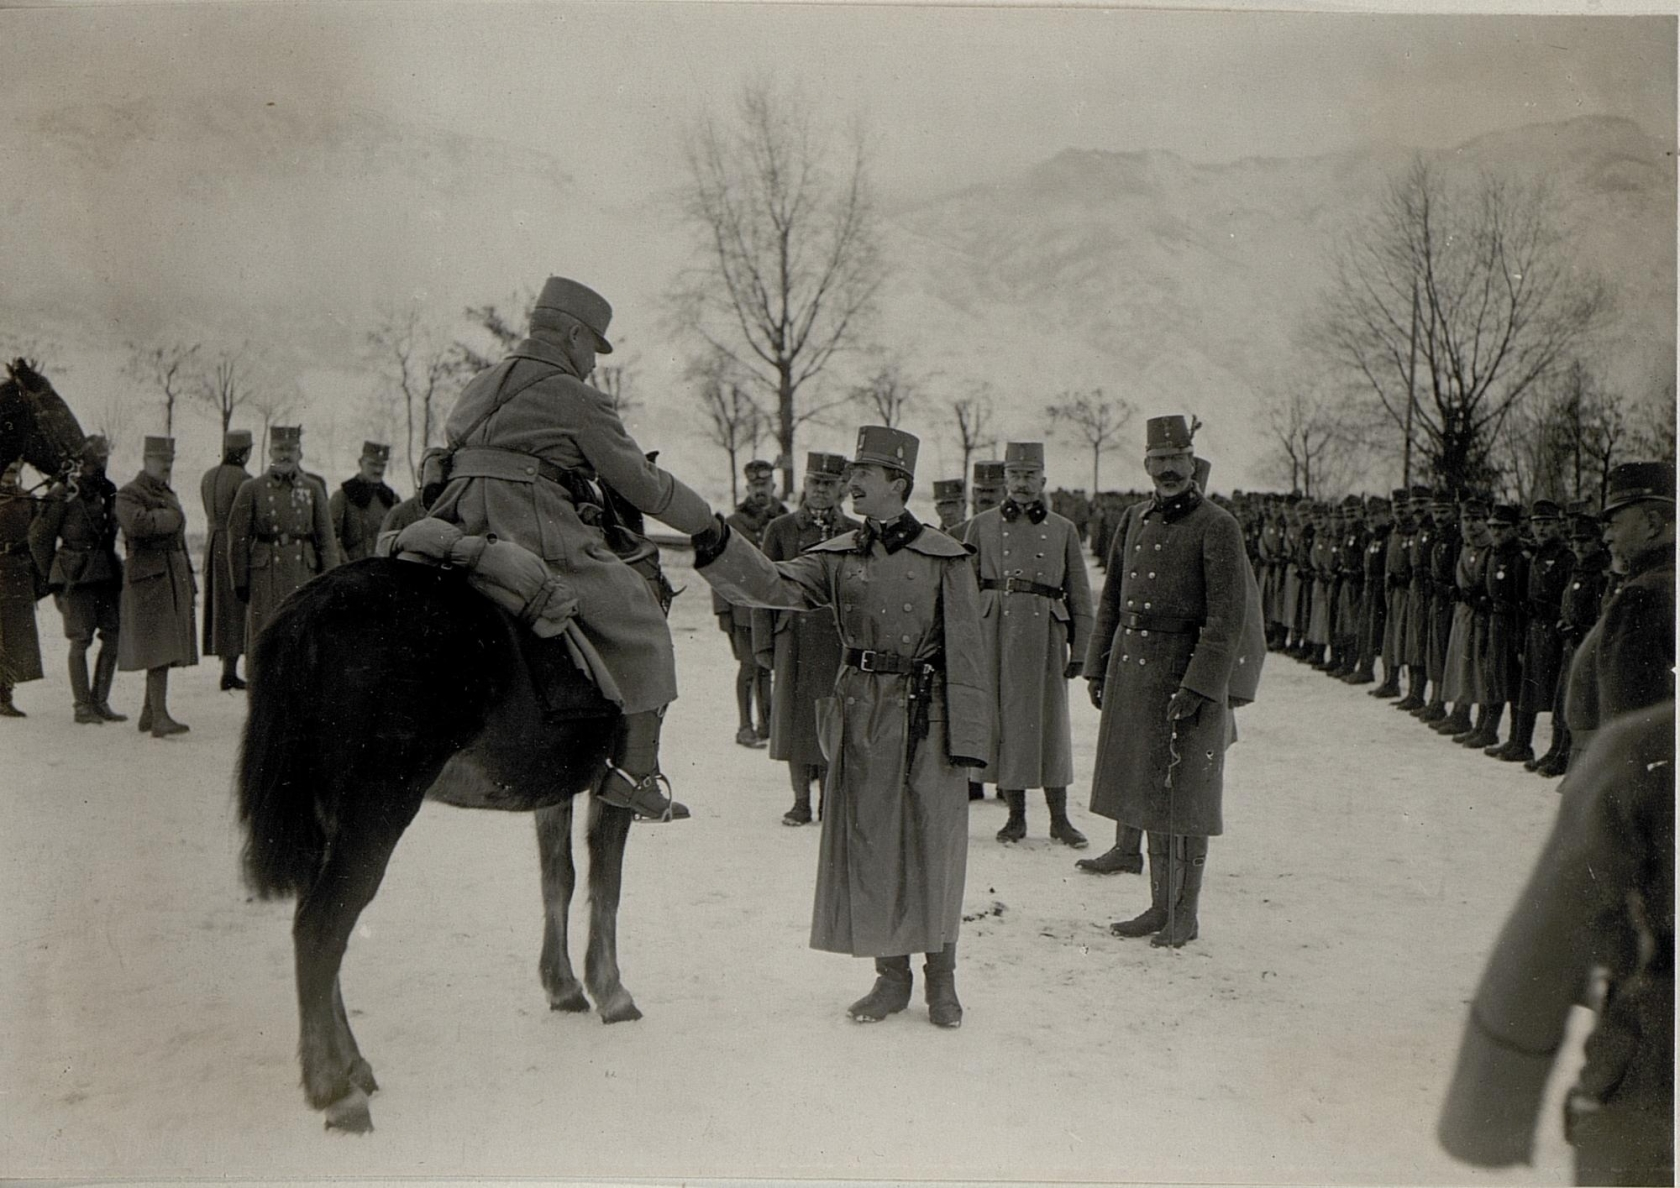 Karl warmly shakes hands with a soldier during a visit to front lines in Levico, Italy in 1917.